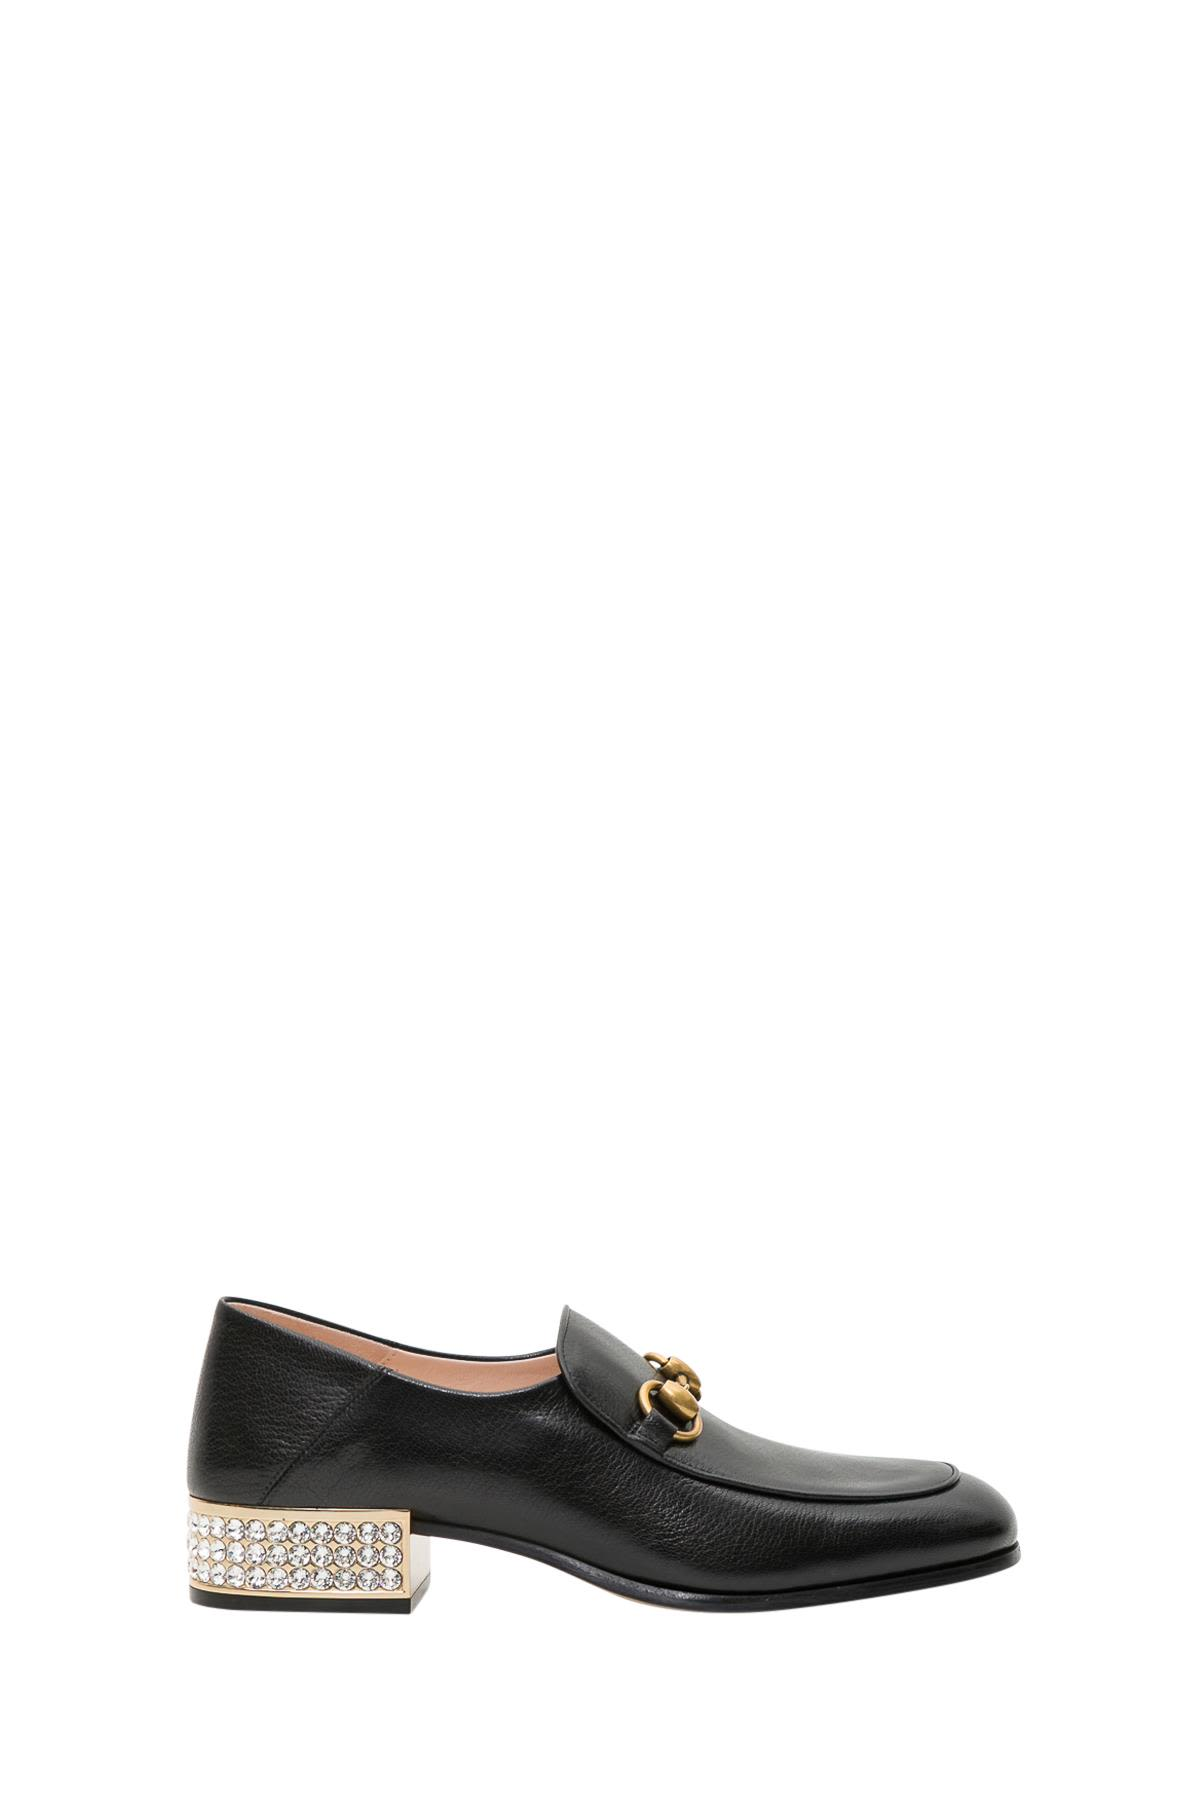 Horsebit Crystal Leather Loafers In Black